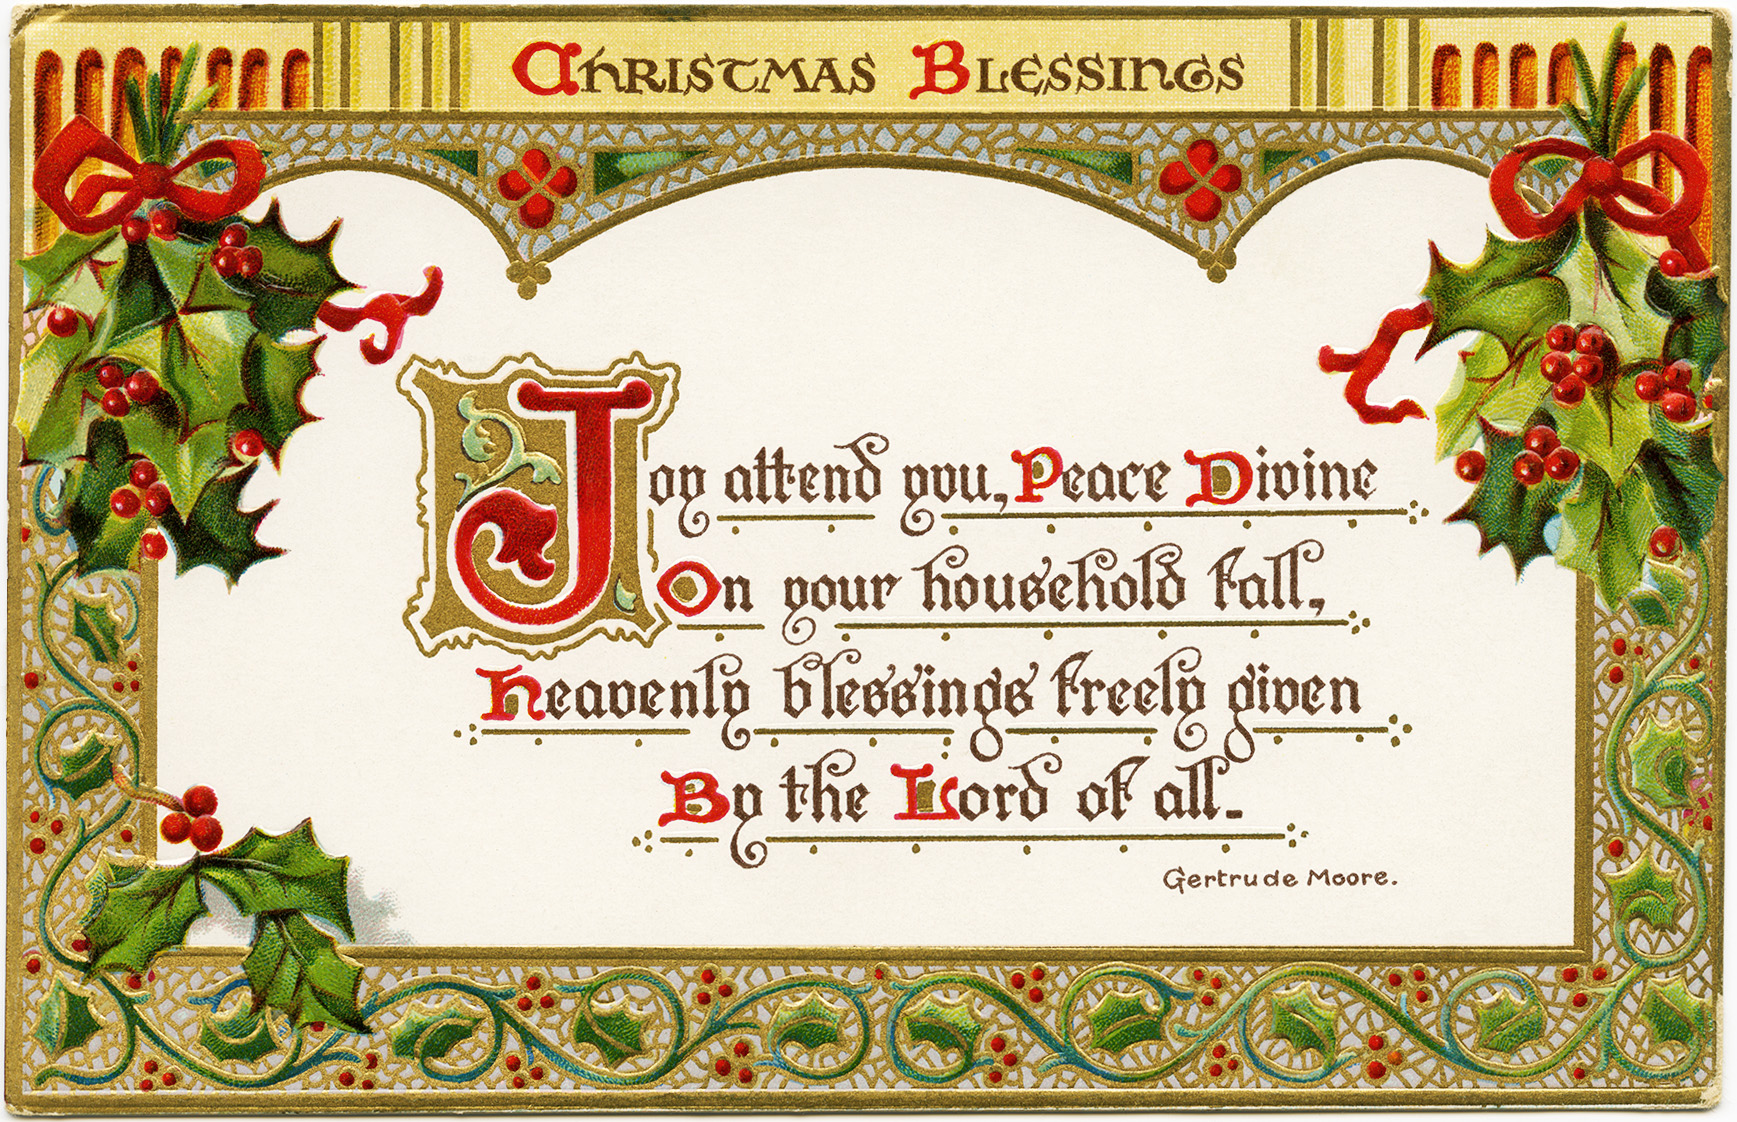 Christmas Blessings Free Vintage Postcard Graphic Old Design